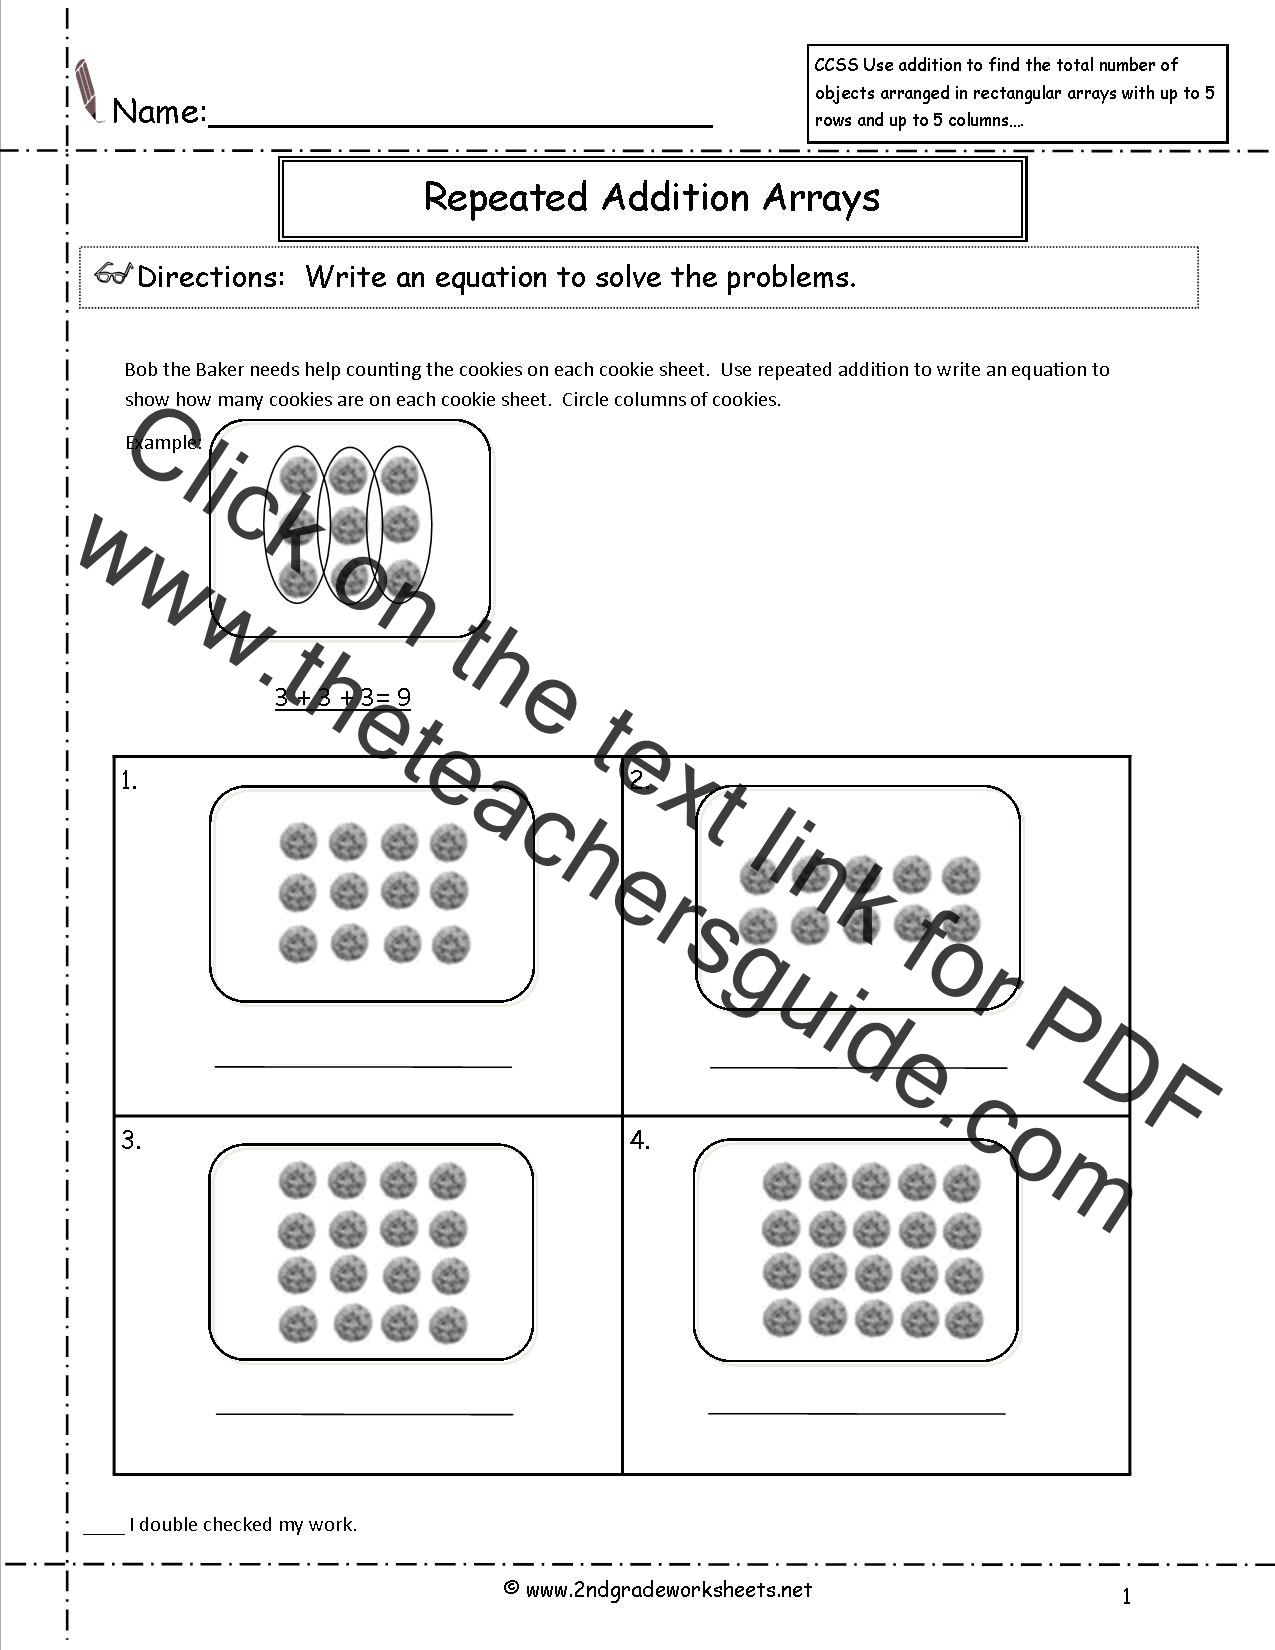 Uncategorized Second Grade Math Worksheets Common Core 2nd grade math common core state standards worksheets oa 4 worksheets